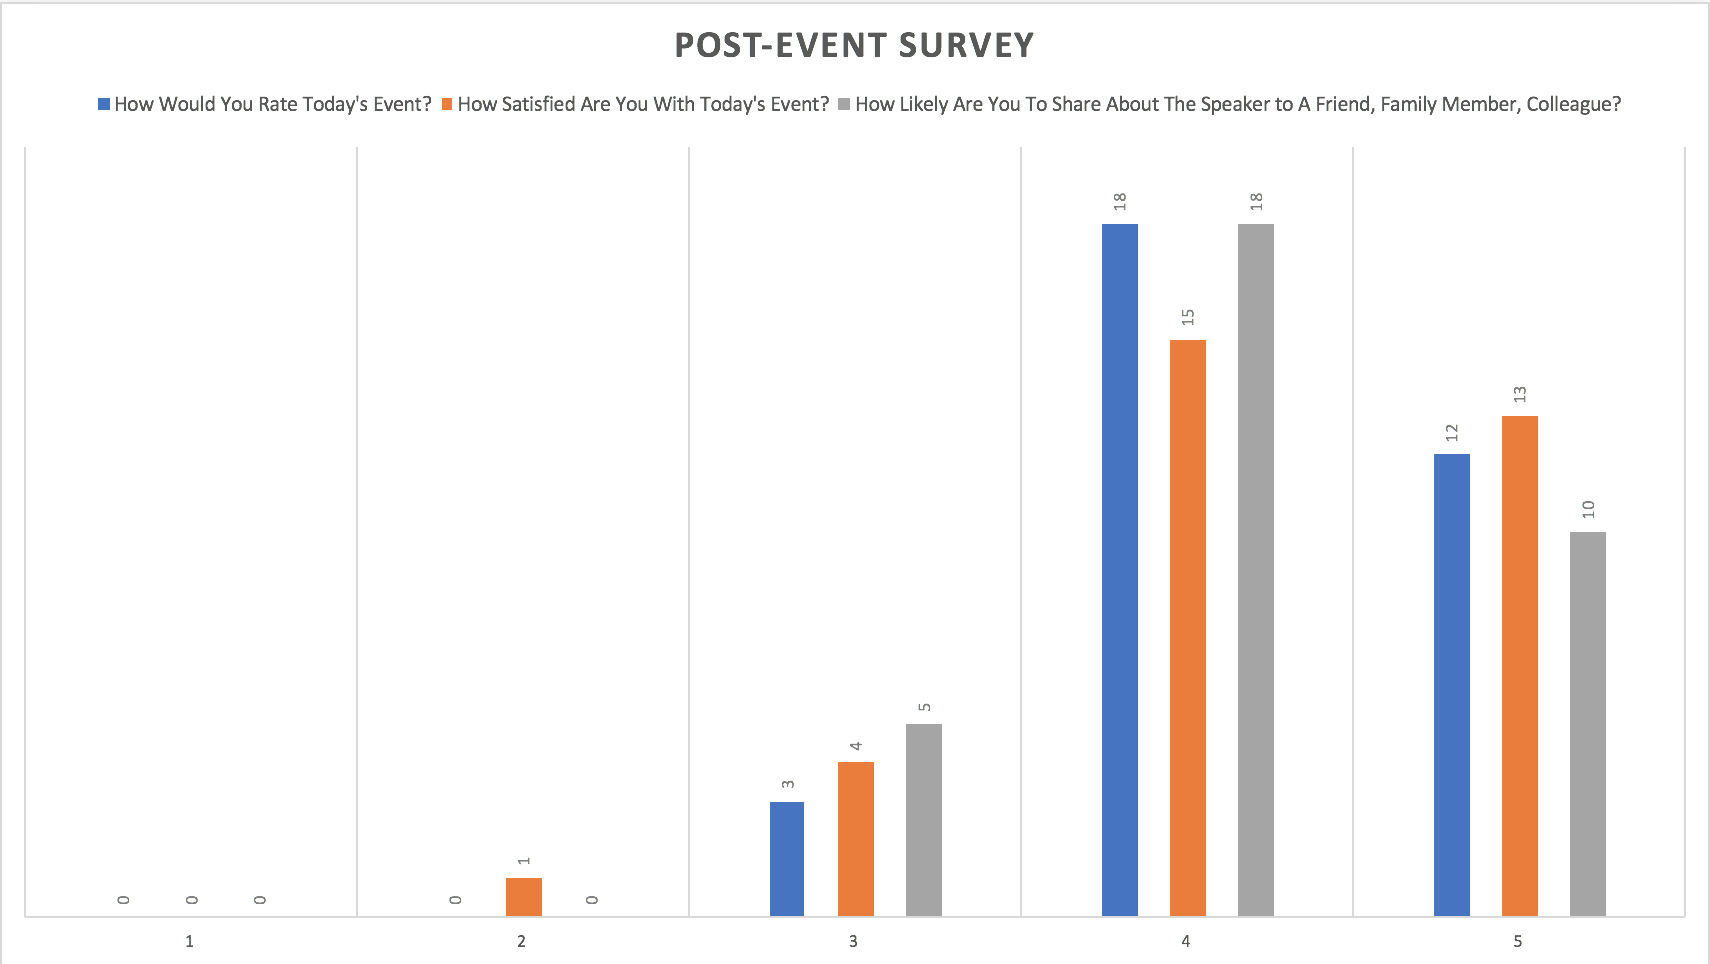 Post Event Survey Results From Attendees With 33 Respondents | 1 being the lowest and 5 being the highest